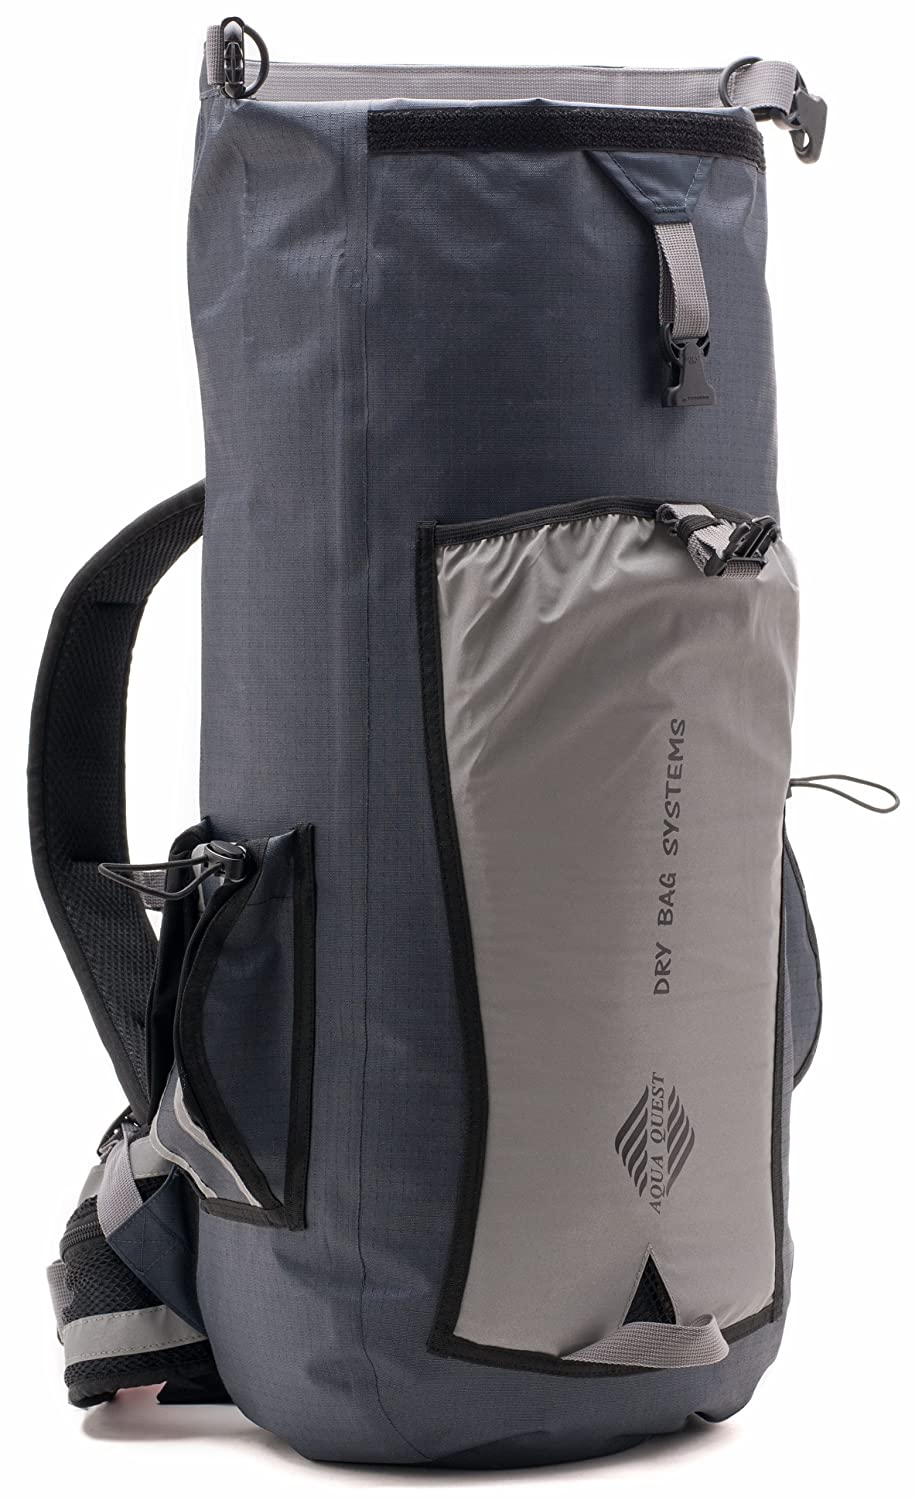 1b926d58d398 Aqua Quest SPORT 25 PRO Grey Waterproof Backpack with Roll Top to Protect  Laptop for Men